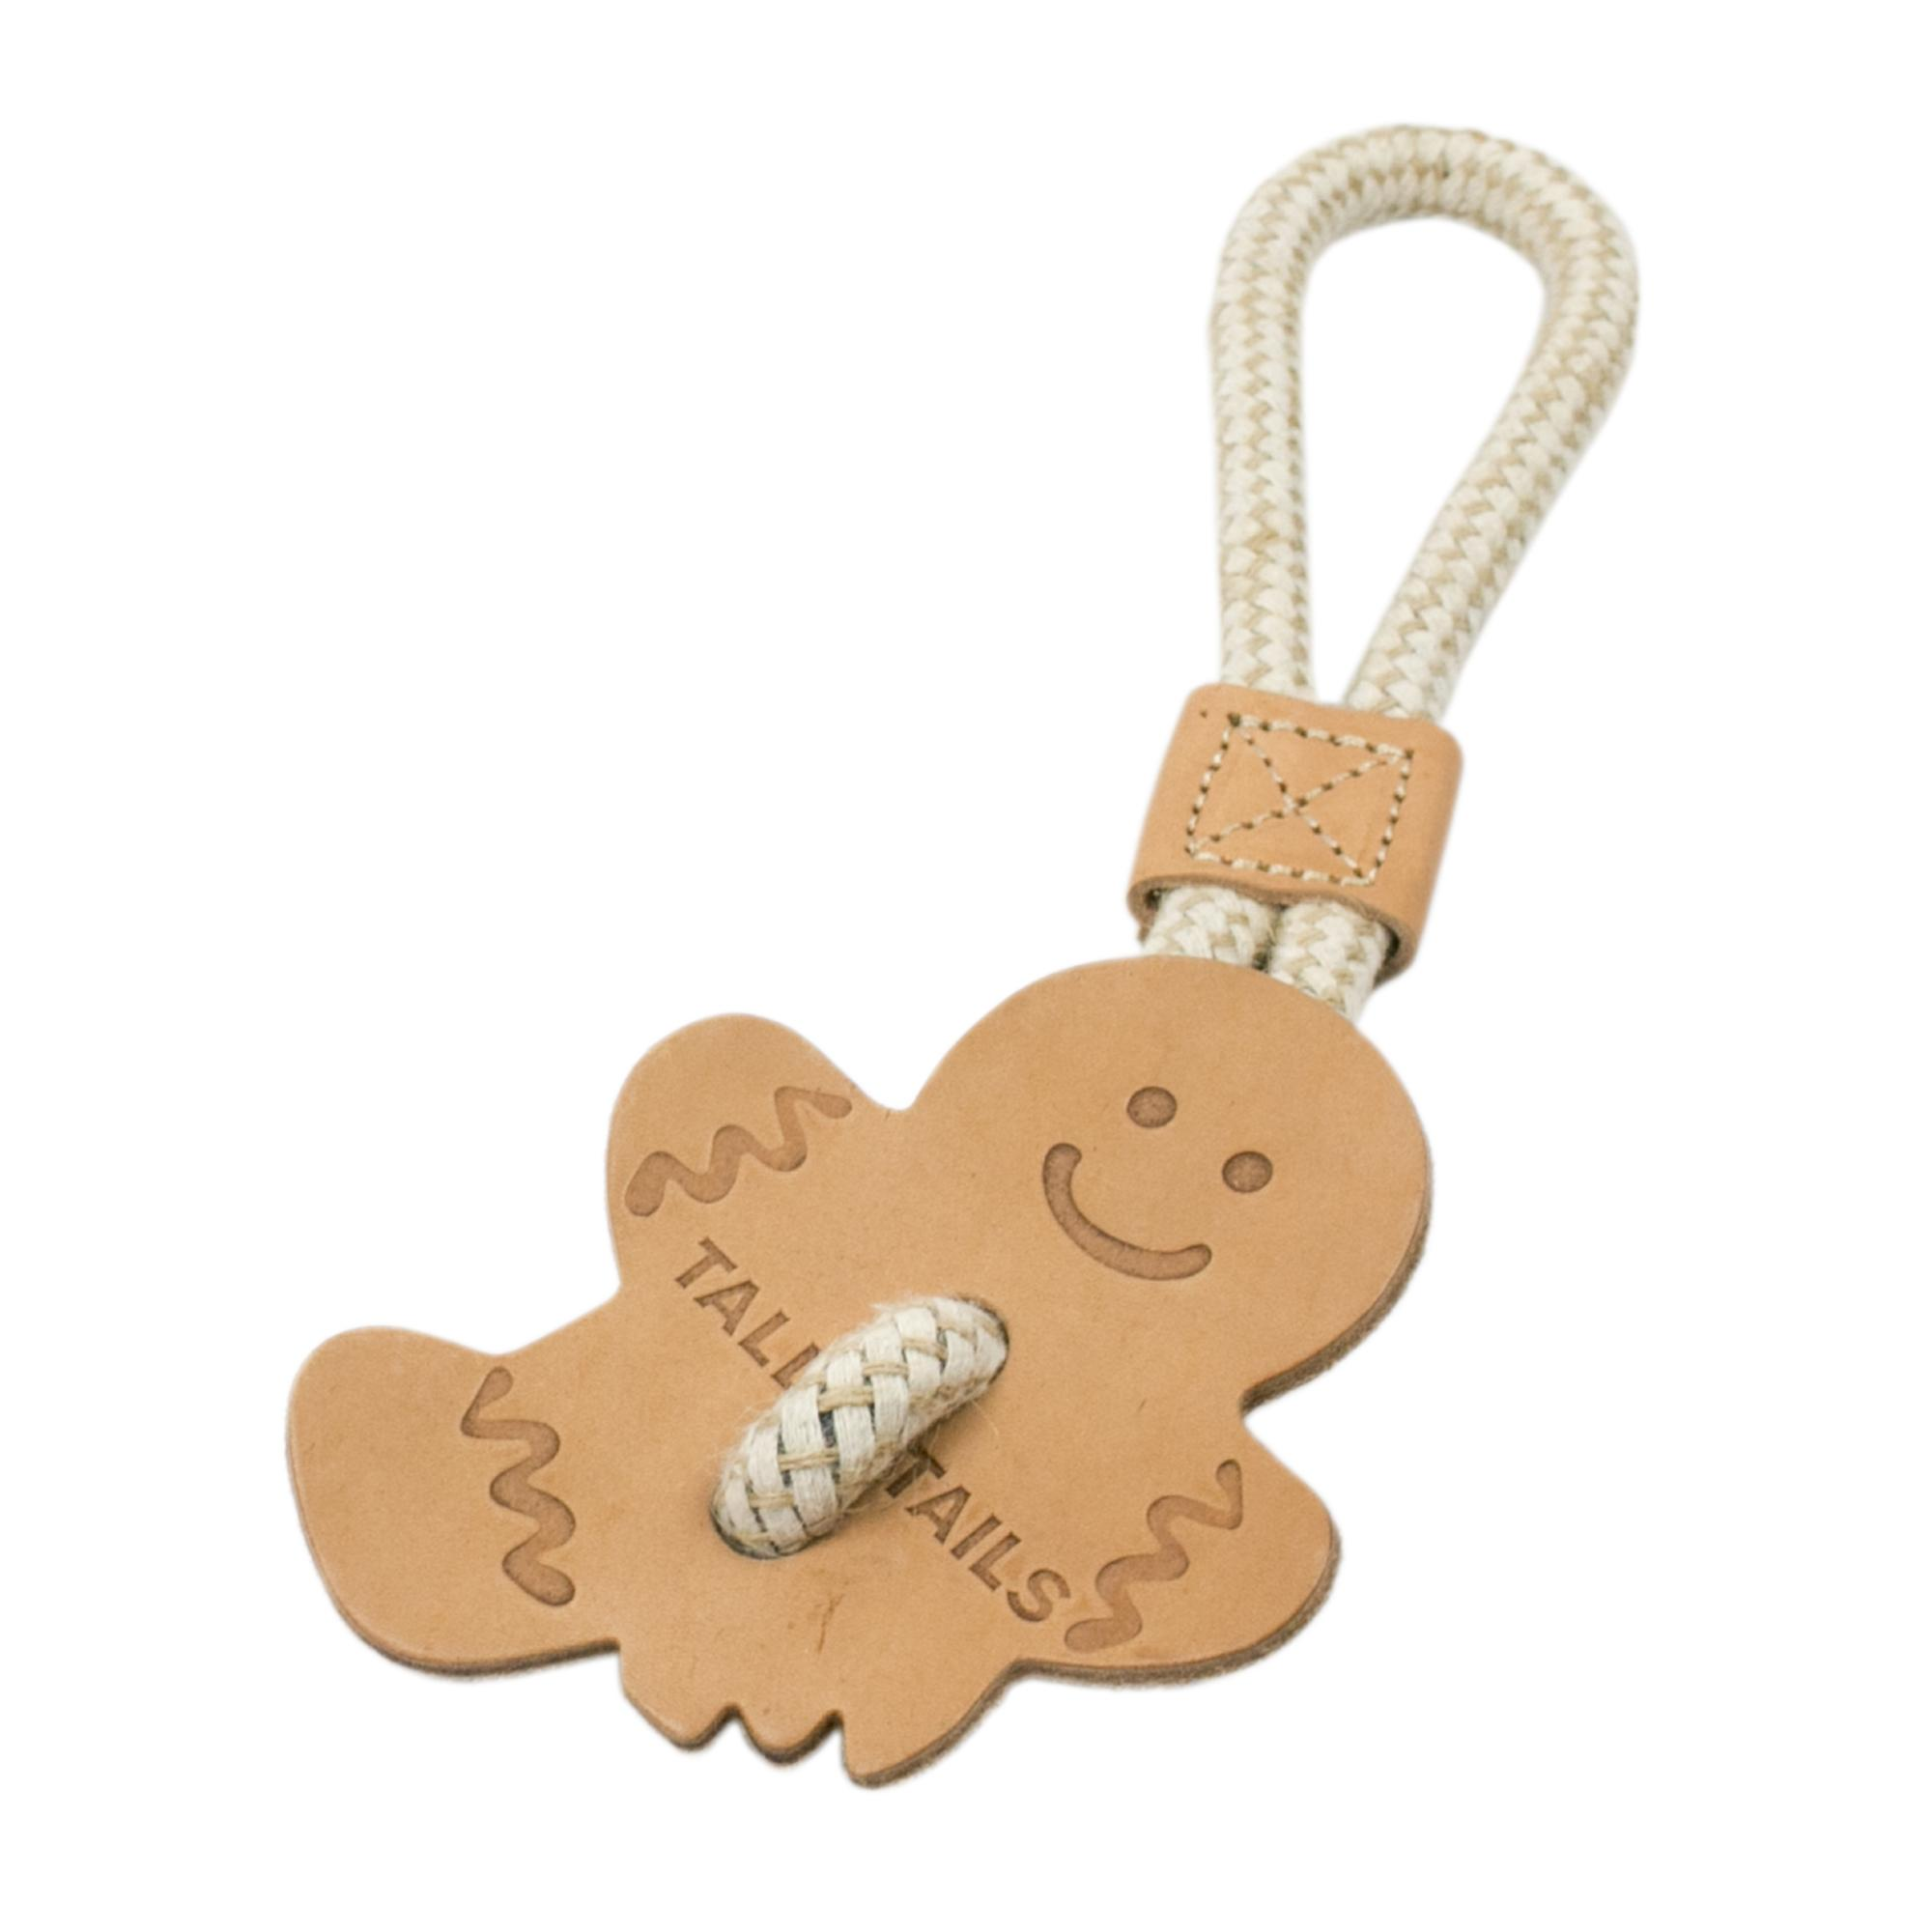 Tall Tails Natural Leather Gingerbread Tug Toy, 13-in